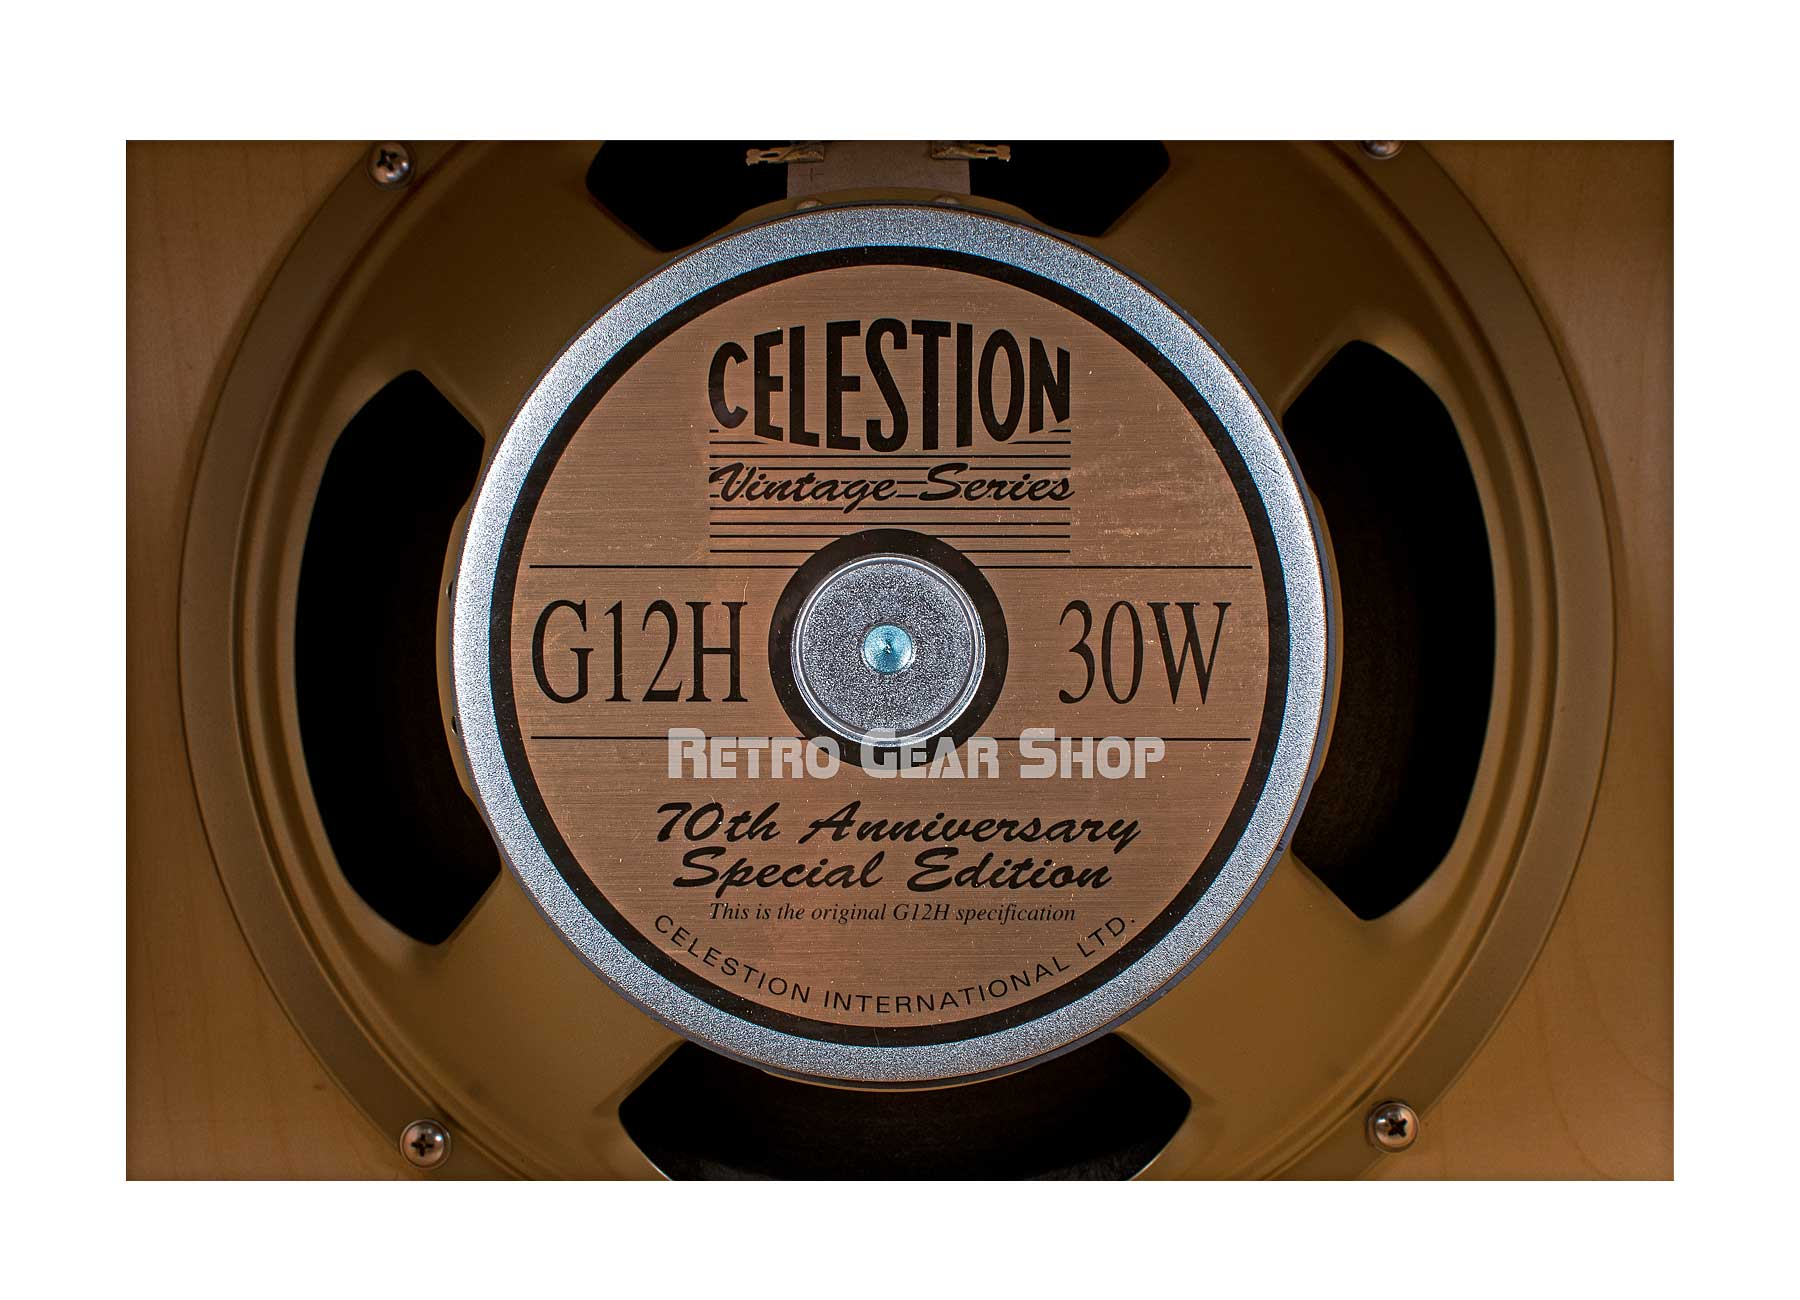 Benson Amps Monarch 1x12 Cabinet Night Moves Silver Grill Speaker Celestion G12H 30W